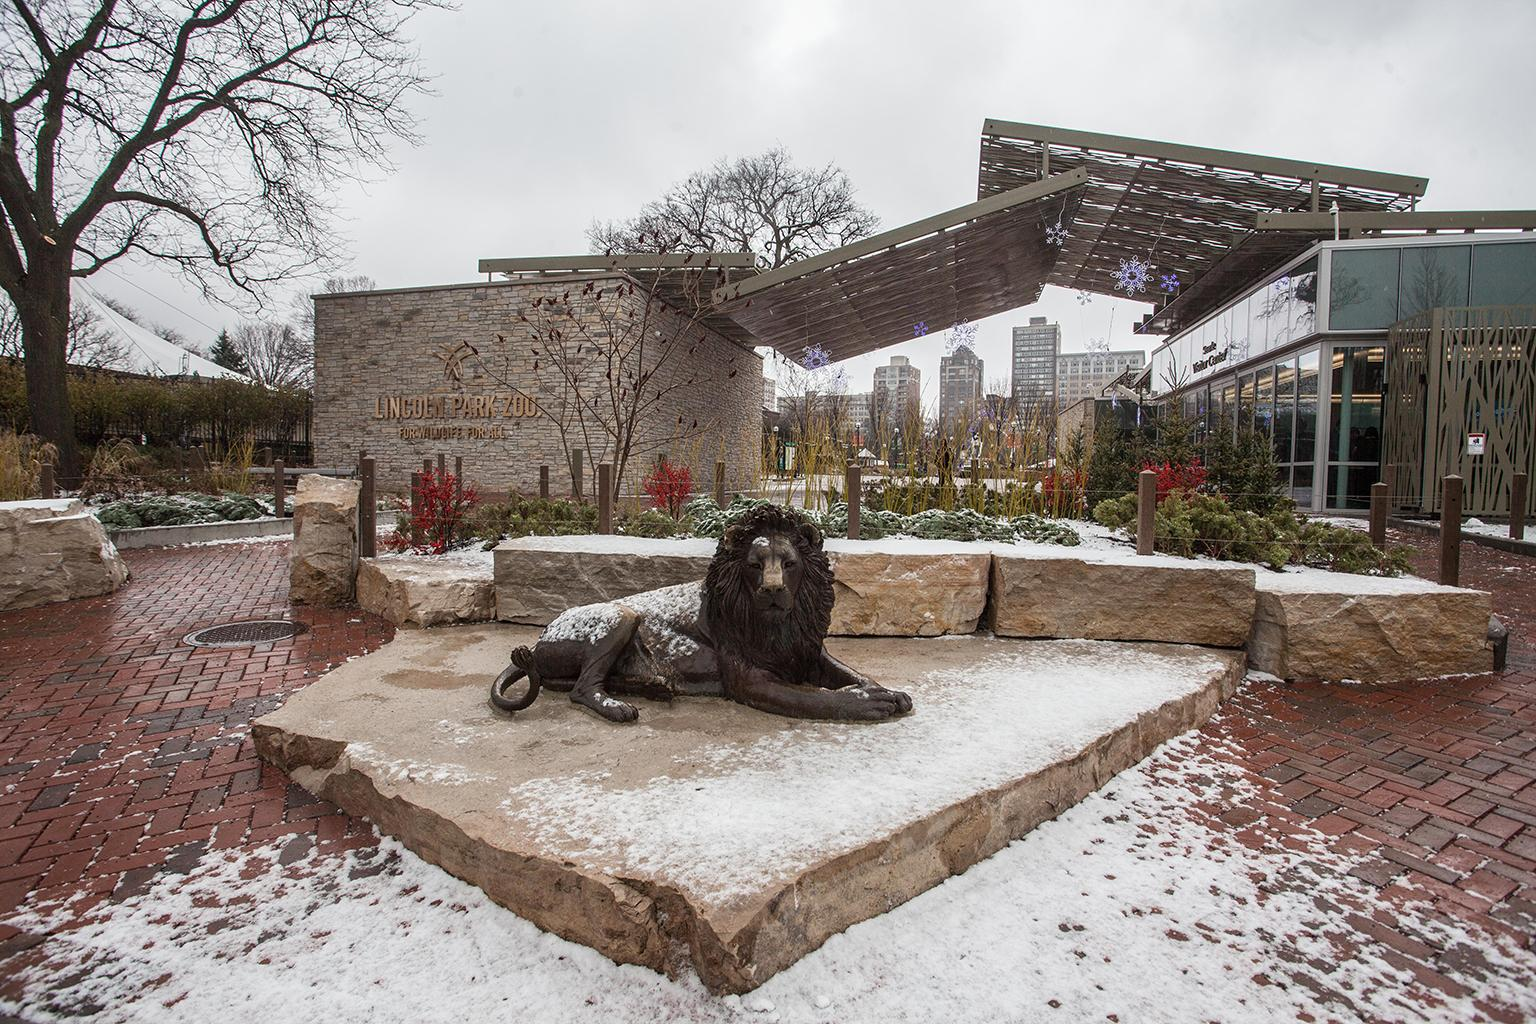 The Adelor lion statue sites outside of Lincoln Park Zoo's new Searle Visitor Center. (Courtesy Lincoln Park Zoo)